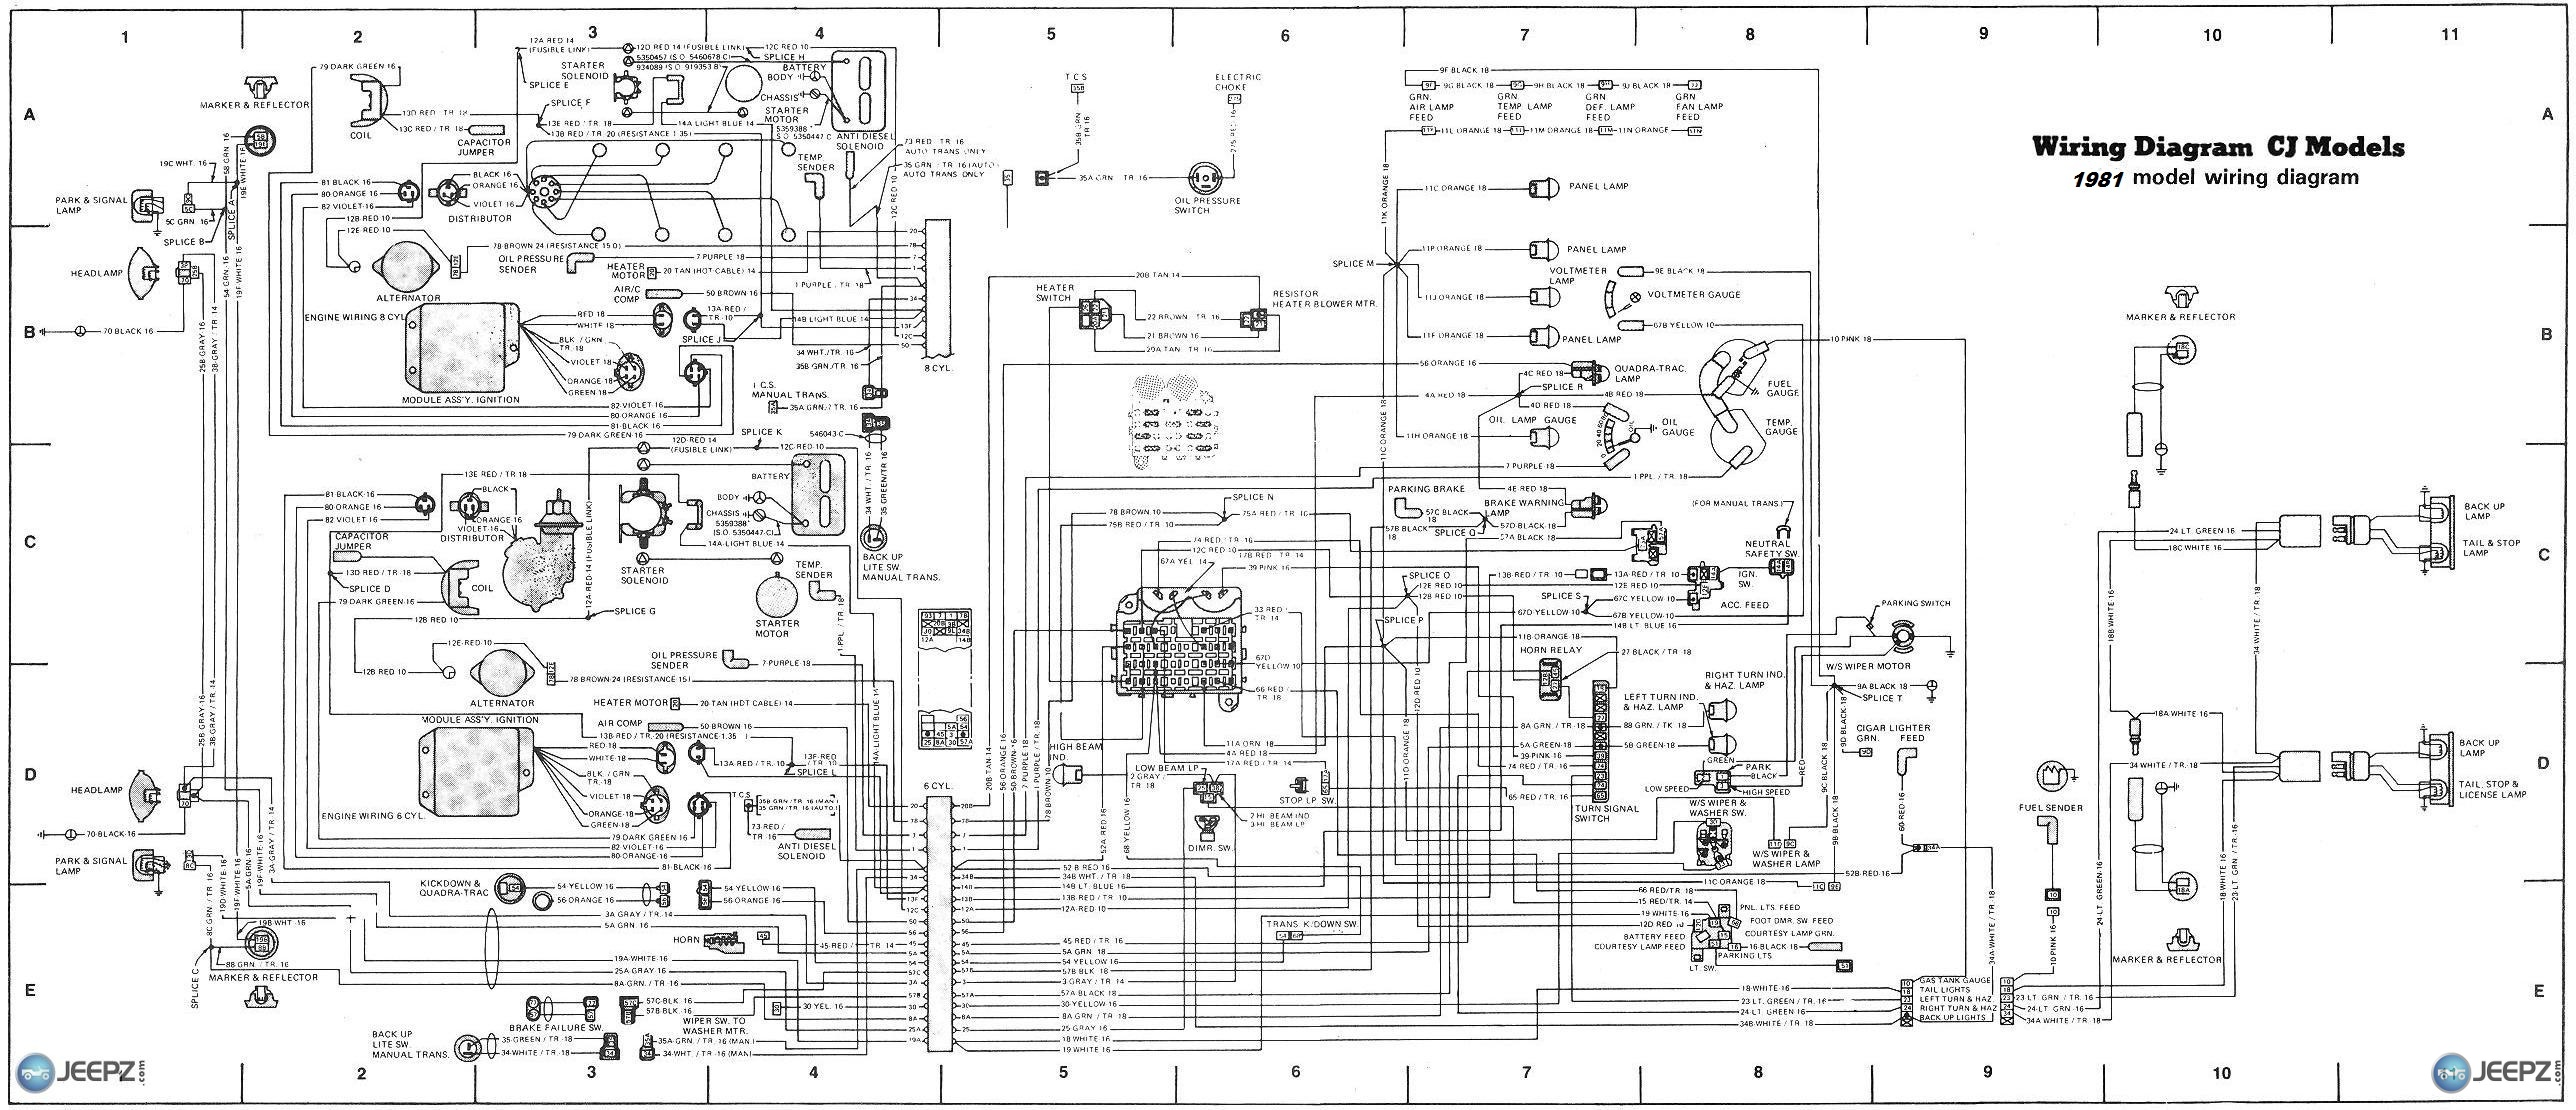 jeep cj5 wiring diagram 1997 wiring diagram1982 jeep cj5 diagram ii purebuild co \\u20221982 jeep cj 7 wiring diagram 16 11